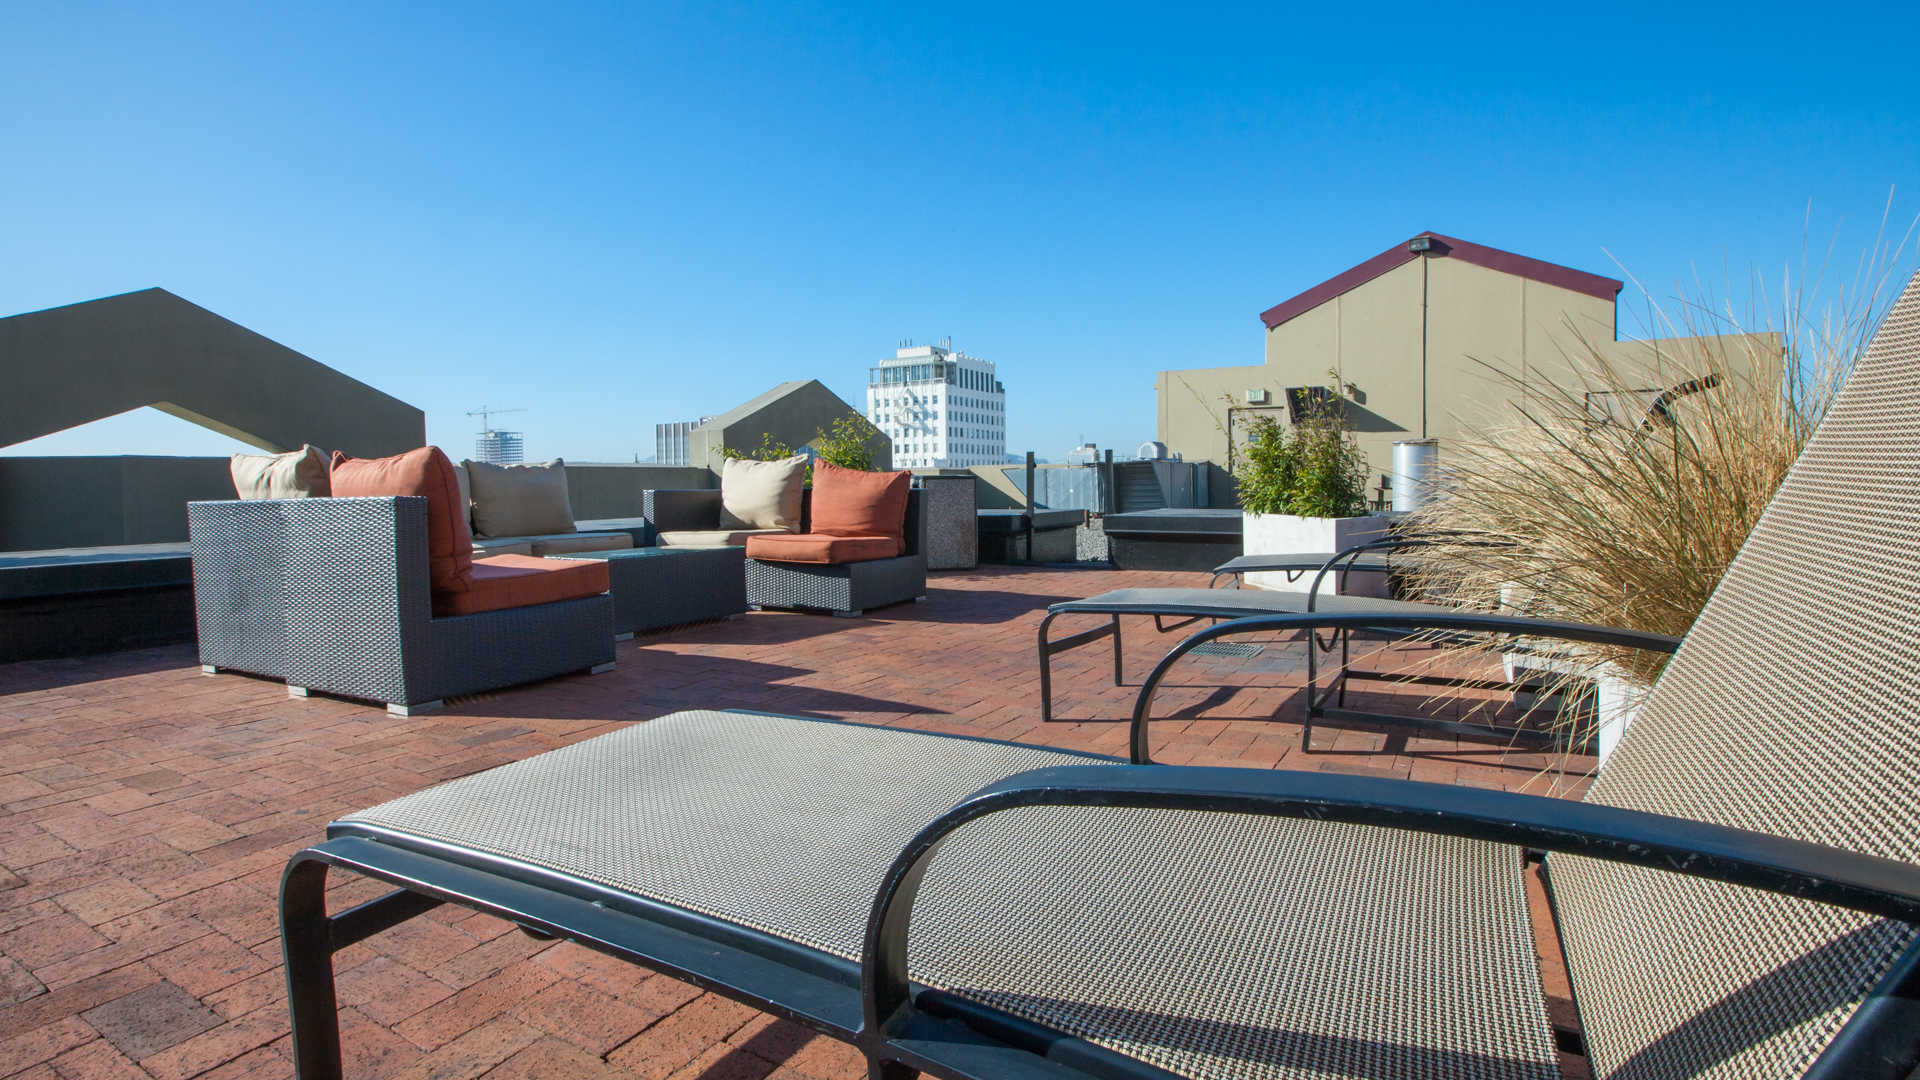 Geary courtyard apartments rooftop deck